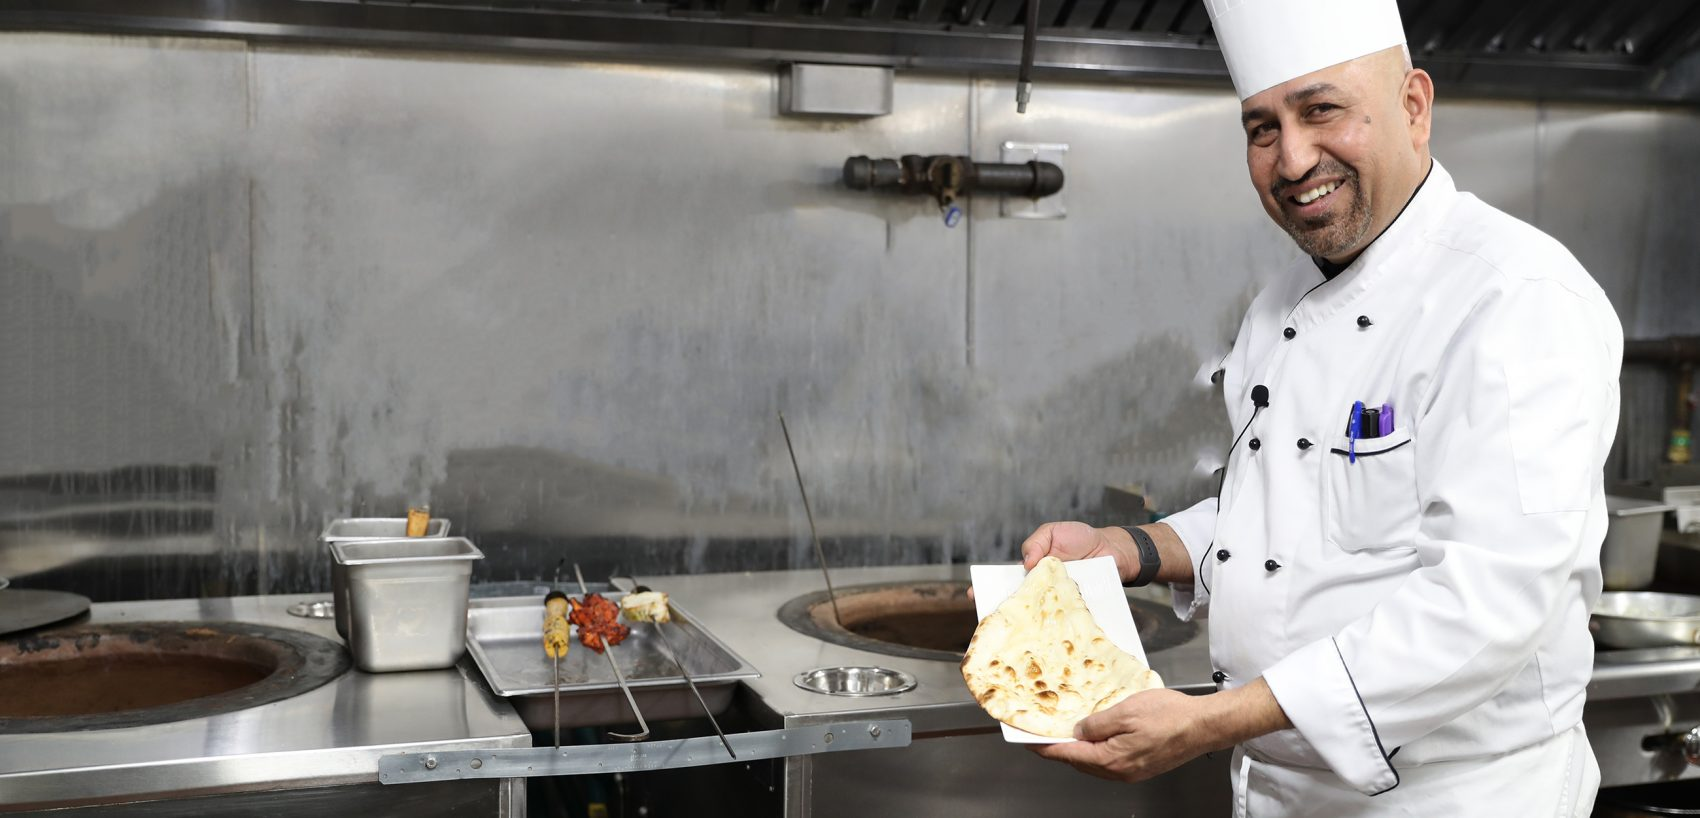 Michelin Starred Chef Raamanuj Sharma of Zaika New York making naan using GULATI Restaurant Tandoor